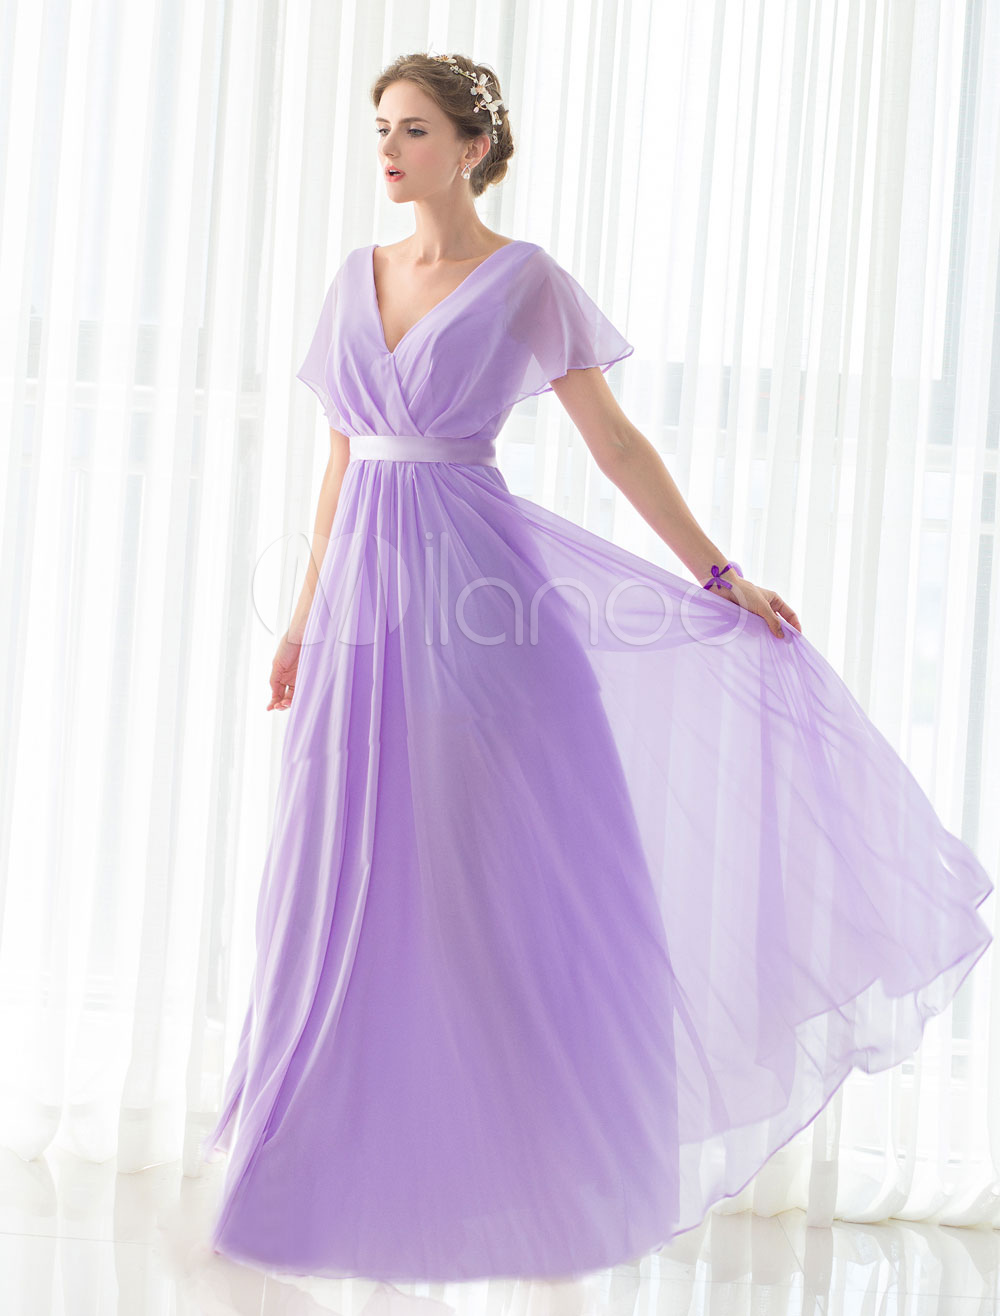 bridesmaid dress lilac chiffon maxi v neck short sleeves. Black Bedroom Furniture Sets. Home Design Ideas